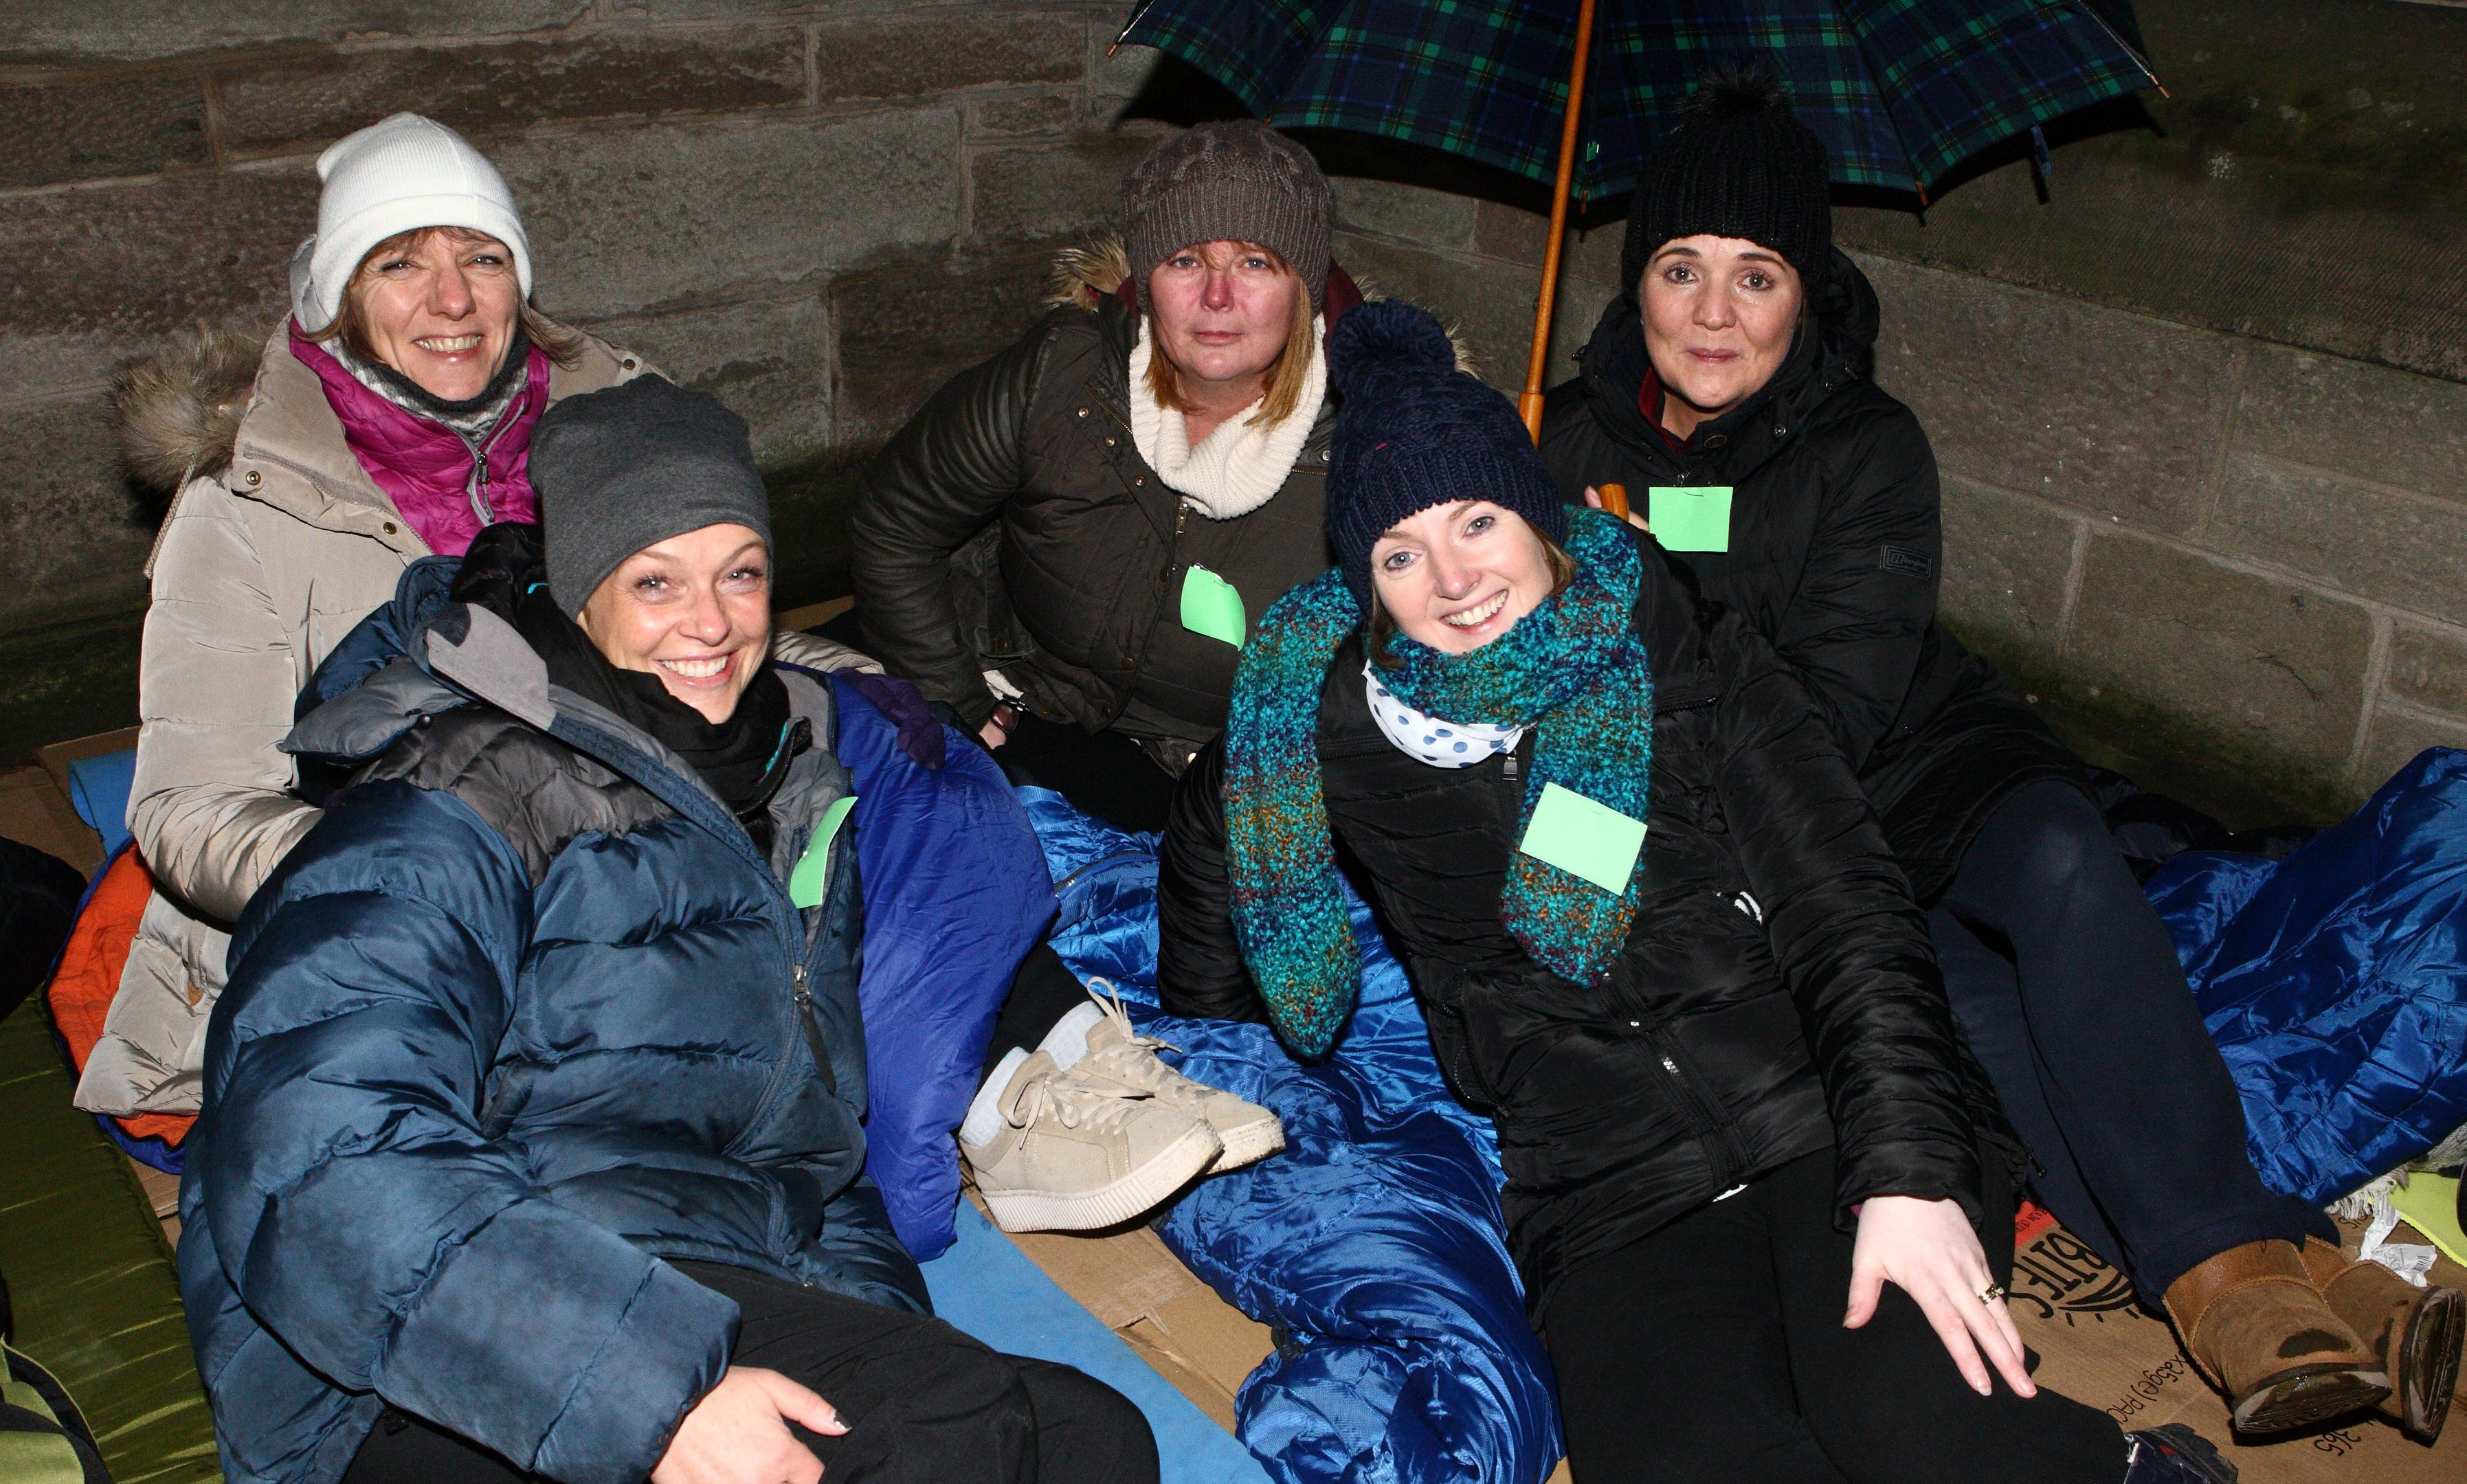 Clare Mailer, Lorna Cameron, Michelle Dow, Andrea McCallum and Elaine Ritchie sleeping outside St Johns Kirk in Perth.